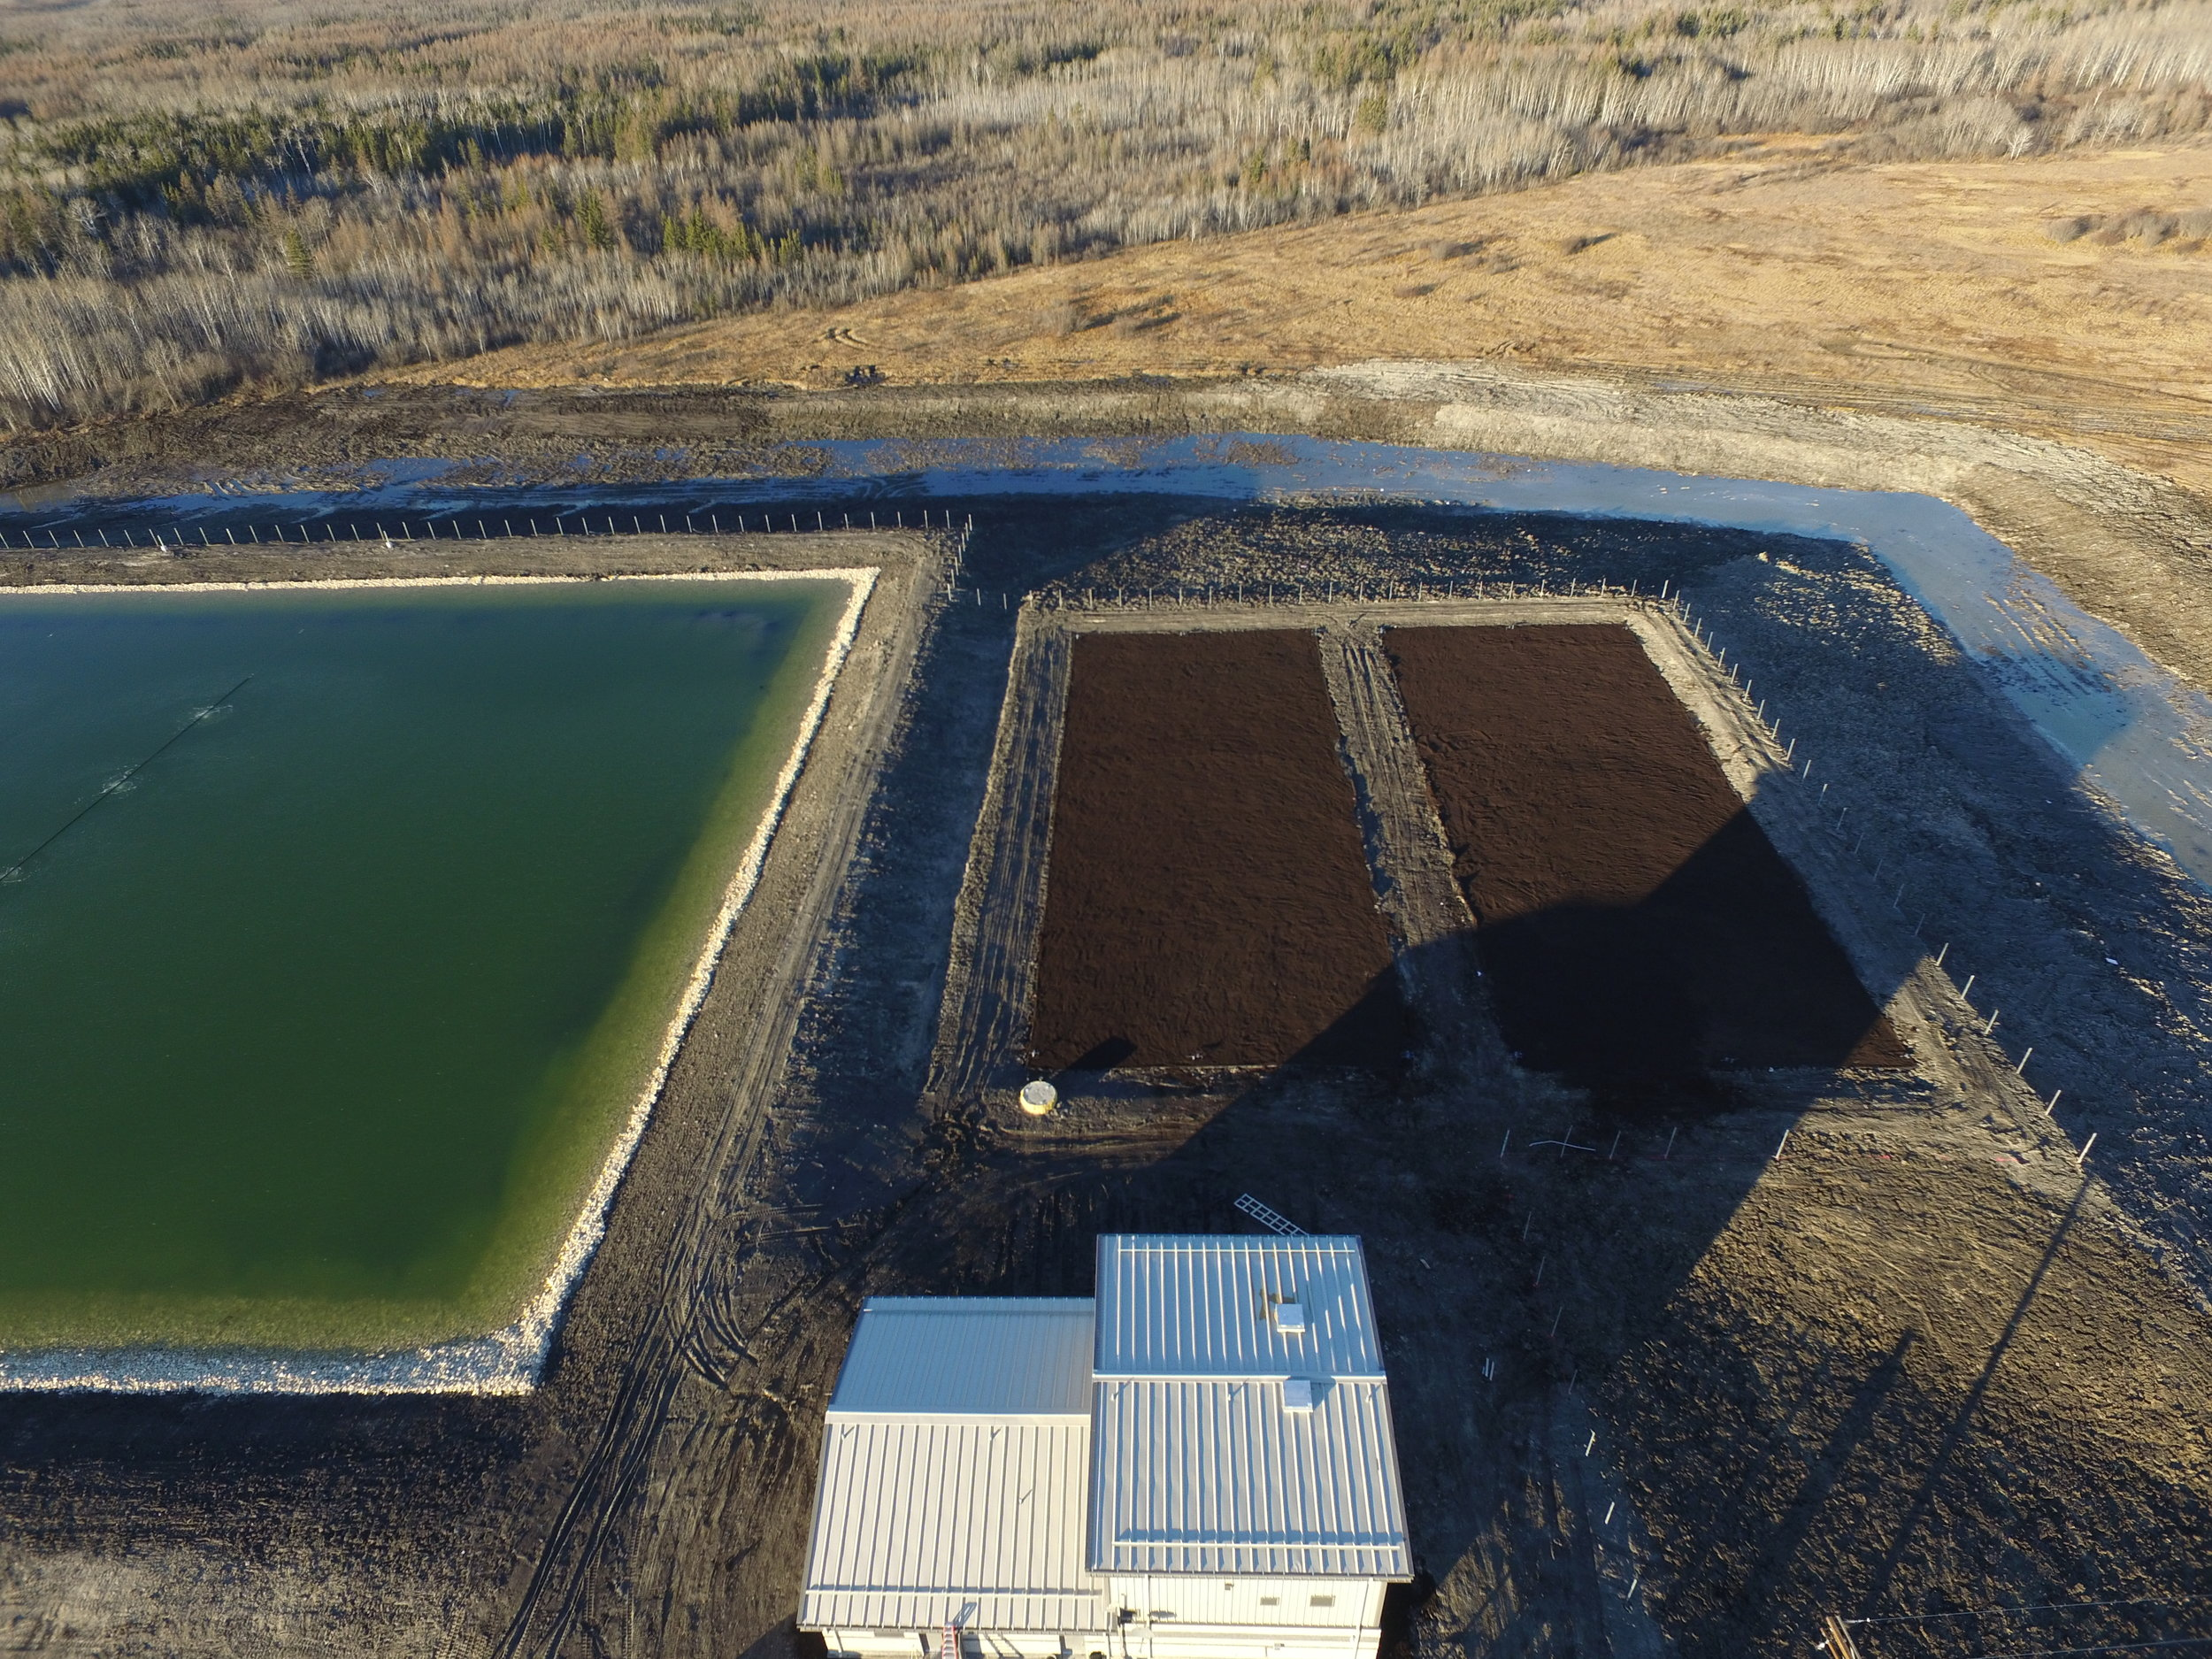 The aerated lagoon and SAGR for Lake St. Martin First Nation were constructed in 2016.